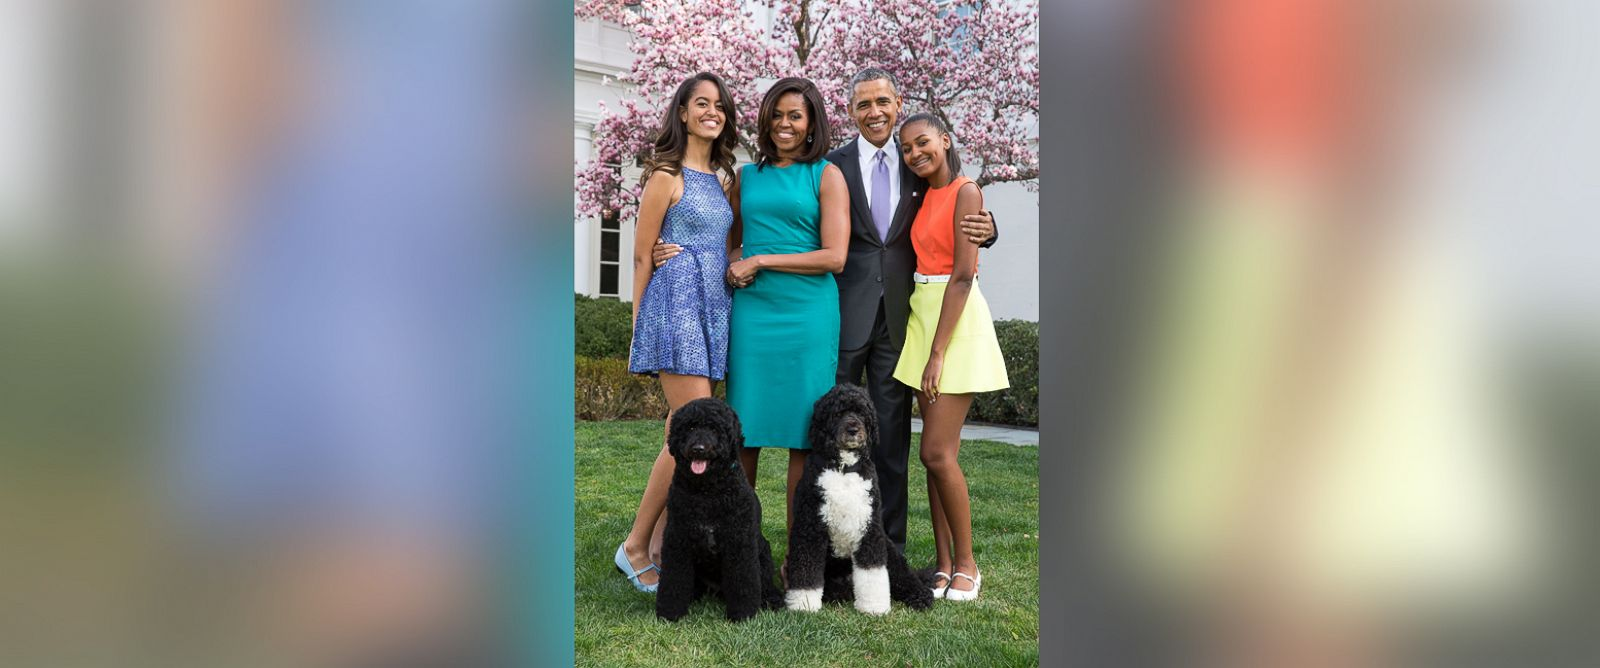 PHOTO: President Barack Obama, First Lady Michelle Obama, and daughters Malia (L) and Sasha (R) pose for a family portrait with their pets Bo and Sunny in the Rose Garden of the White House on Easter Sunday, April 5, 2015, in Washington.